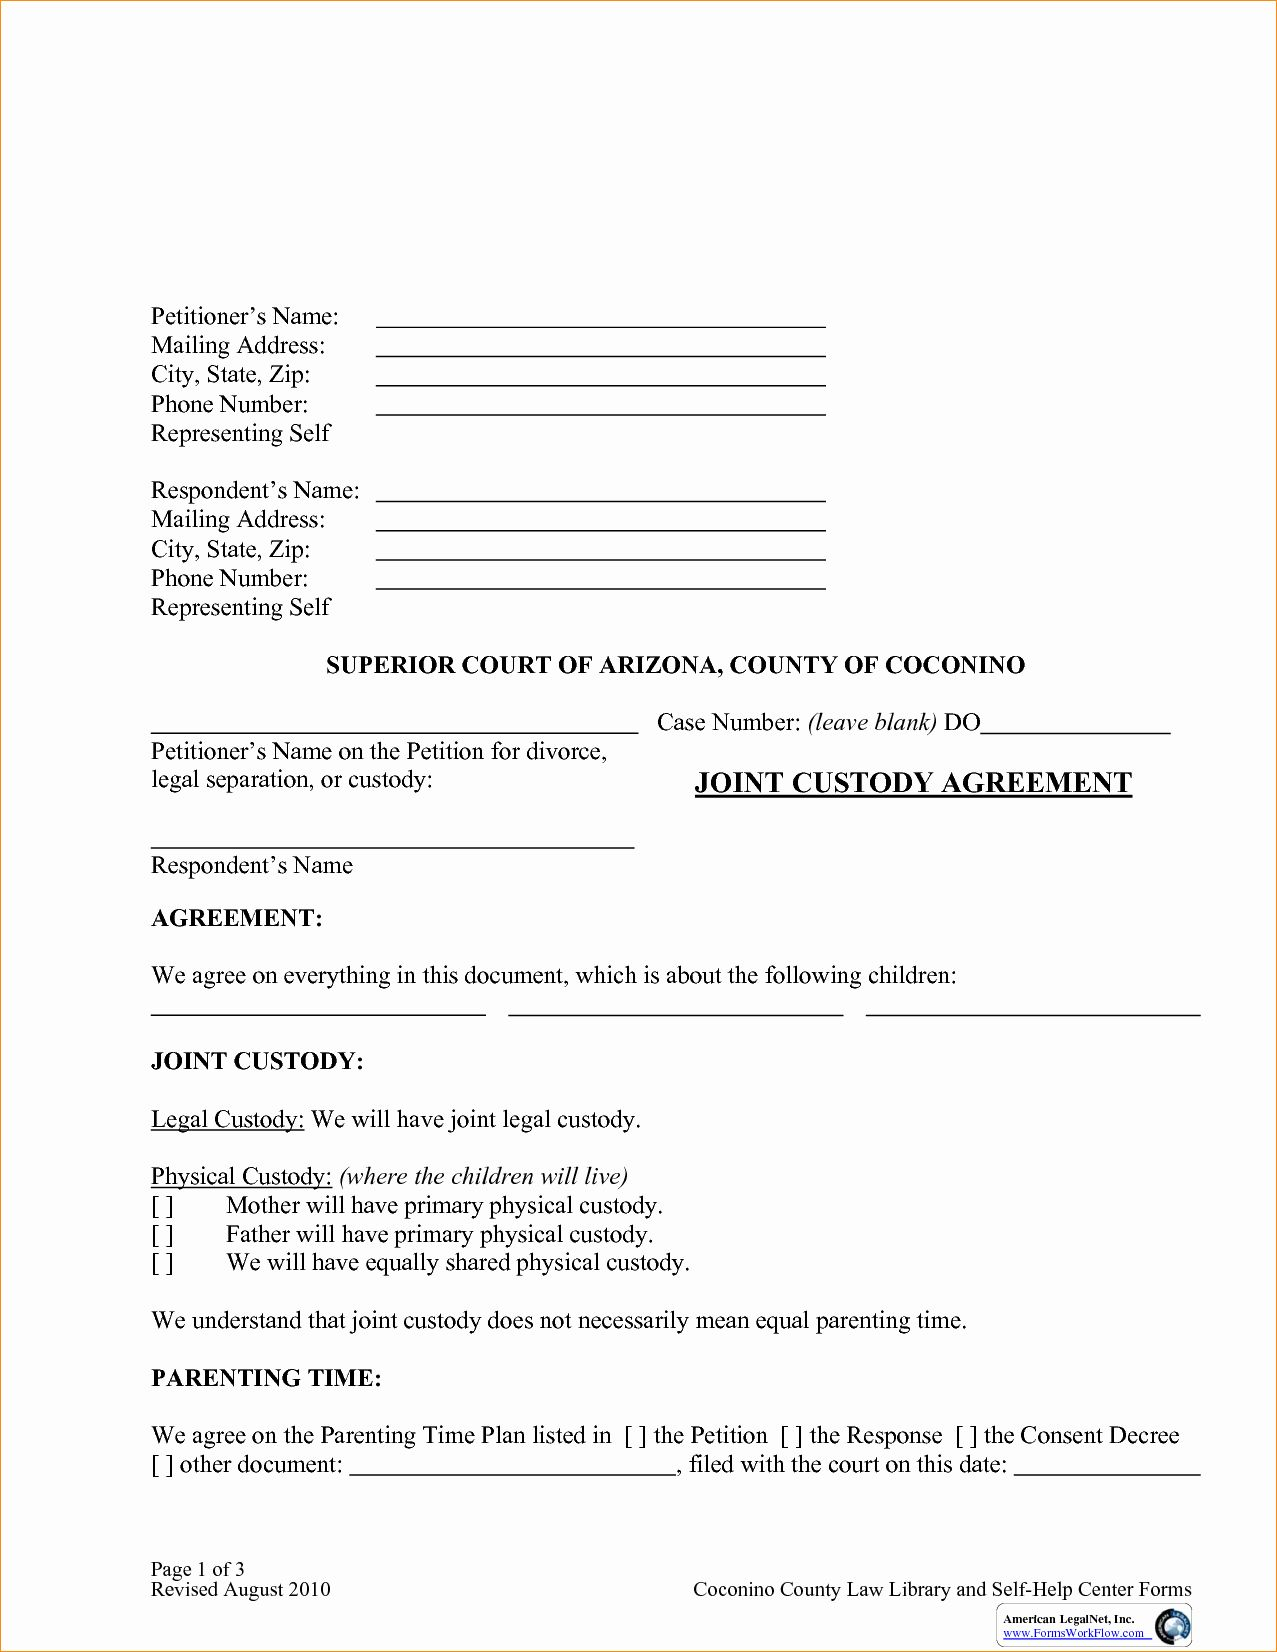 Child Custody Agreement Template Best Of Custody Agreement Template Custody Agreement Joint Custody Legal Separation